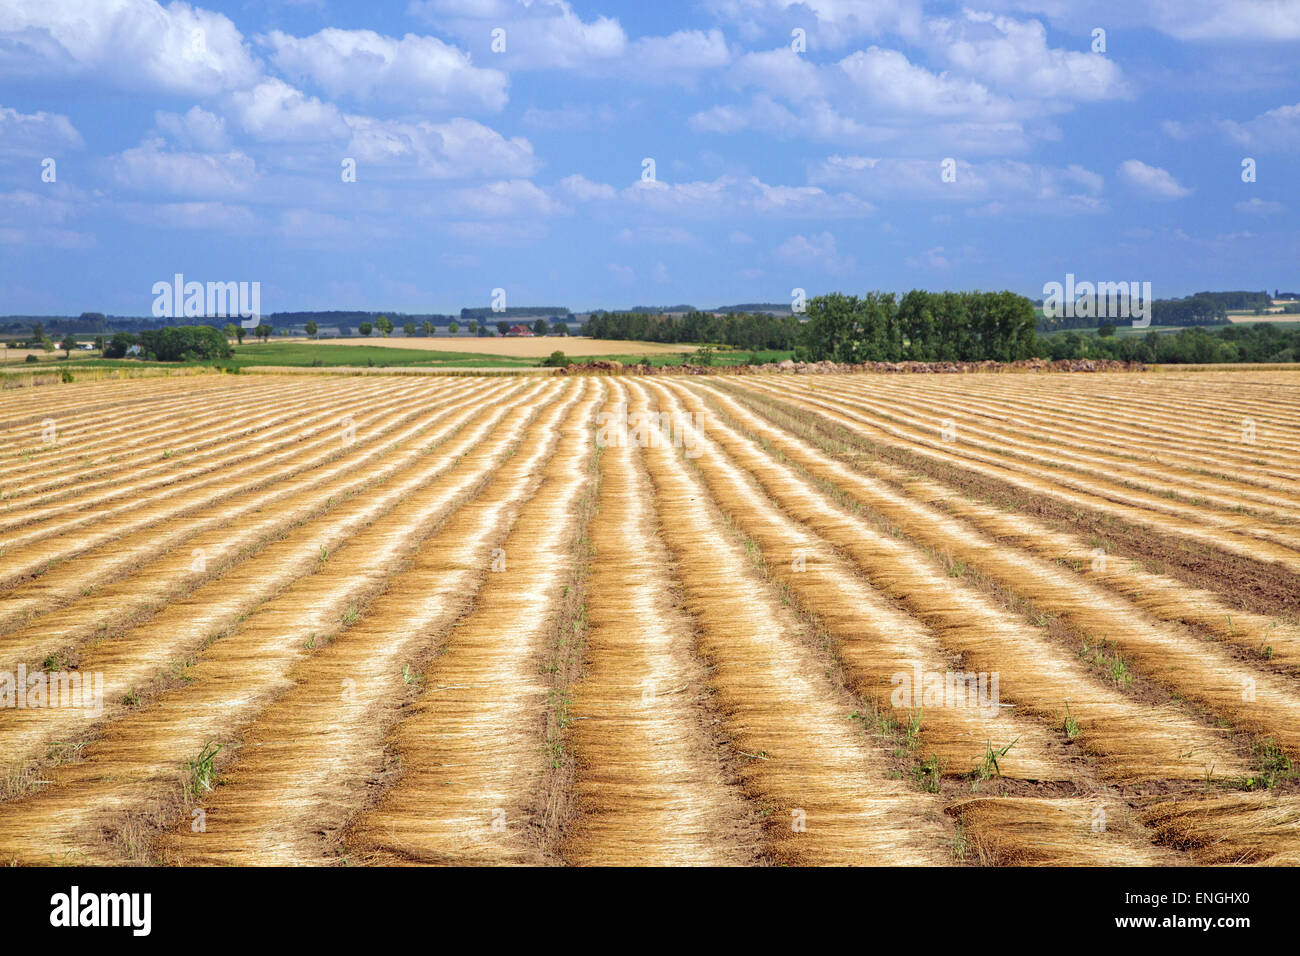 Farmland showing flax being dew or ground retted - Stock Image